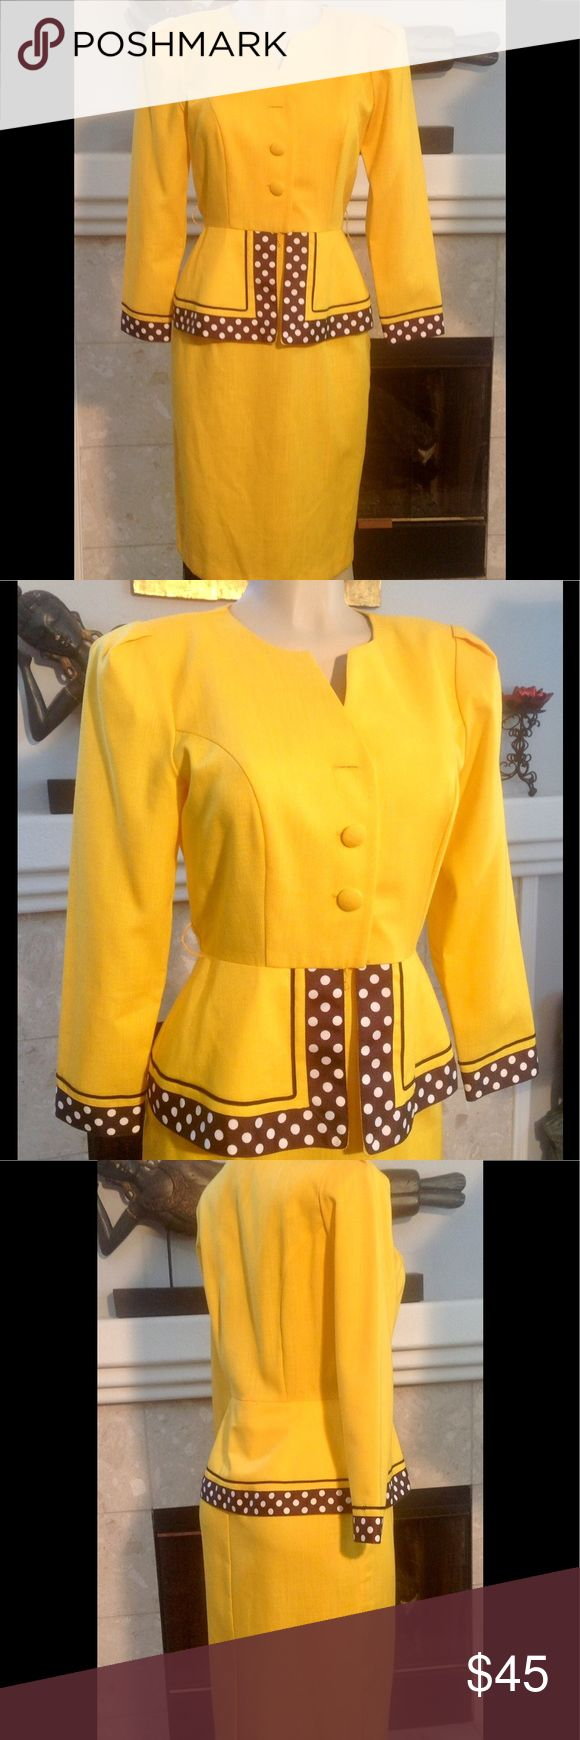 Melissa Petite Vintage Pinup Yellow Rare Dress S/M Melissa Petites Vintage 80's Secretary Pinup Dress One of a kind and rare, and may have been custom made There is no size tag, please go by measurements, but feels like S/M  Base color is bright yellow with black white polka dots around cuffs and peplum boarders Approximate measurements are bust 18.5, waist 15, length 41.5 In great used condition with no tears holes or stains. Top front button missing From a smoke free home(D216) Melissa…